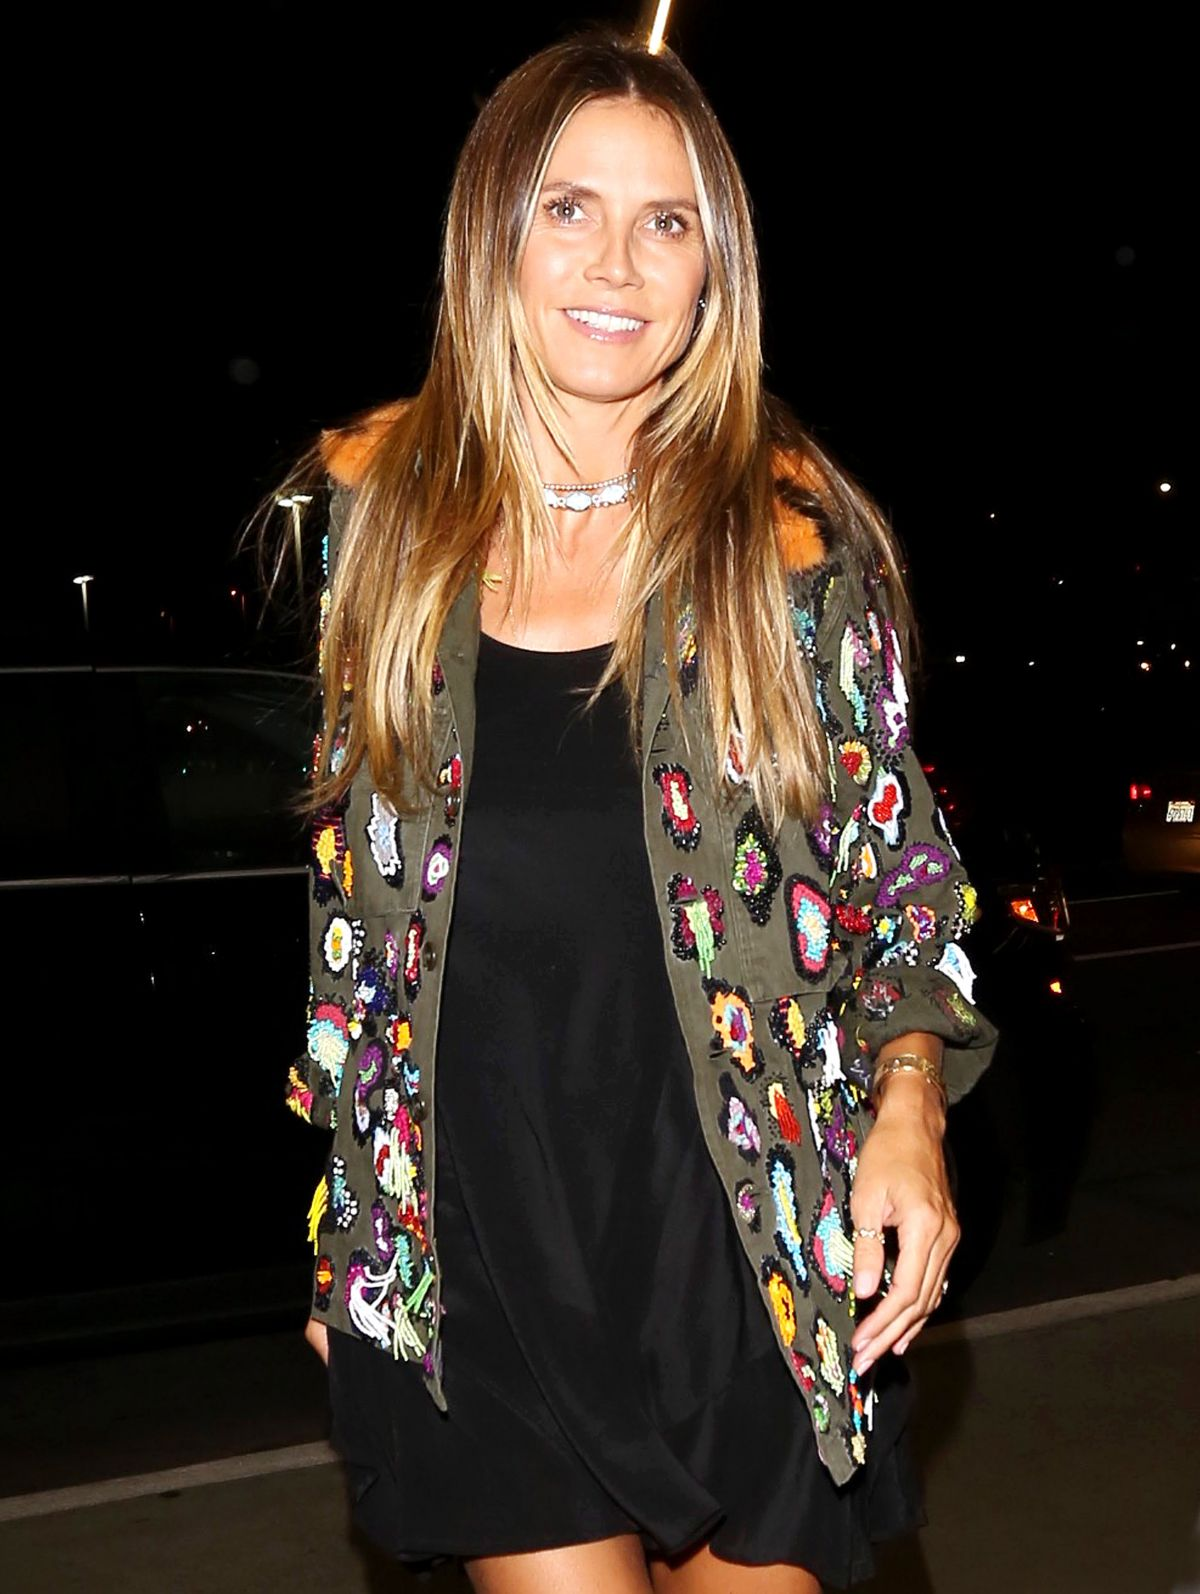 HEIDI KLUM at Los Angeles International Airport 08/18/2017